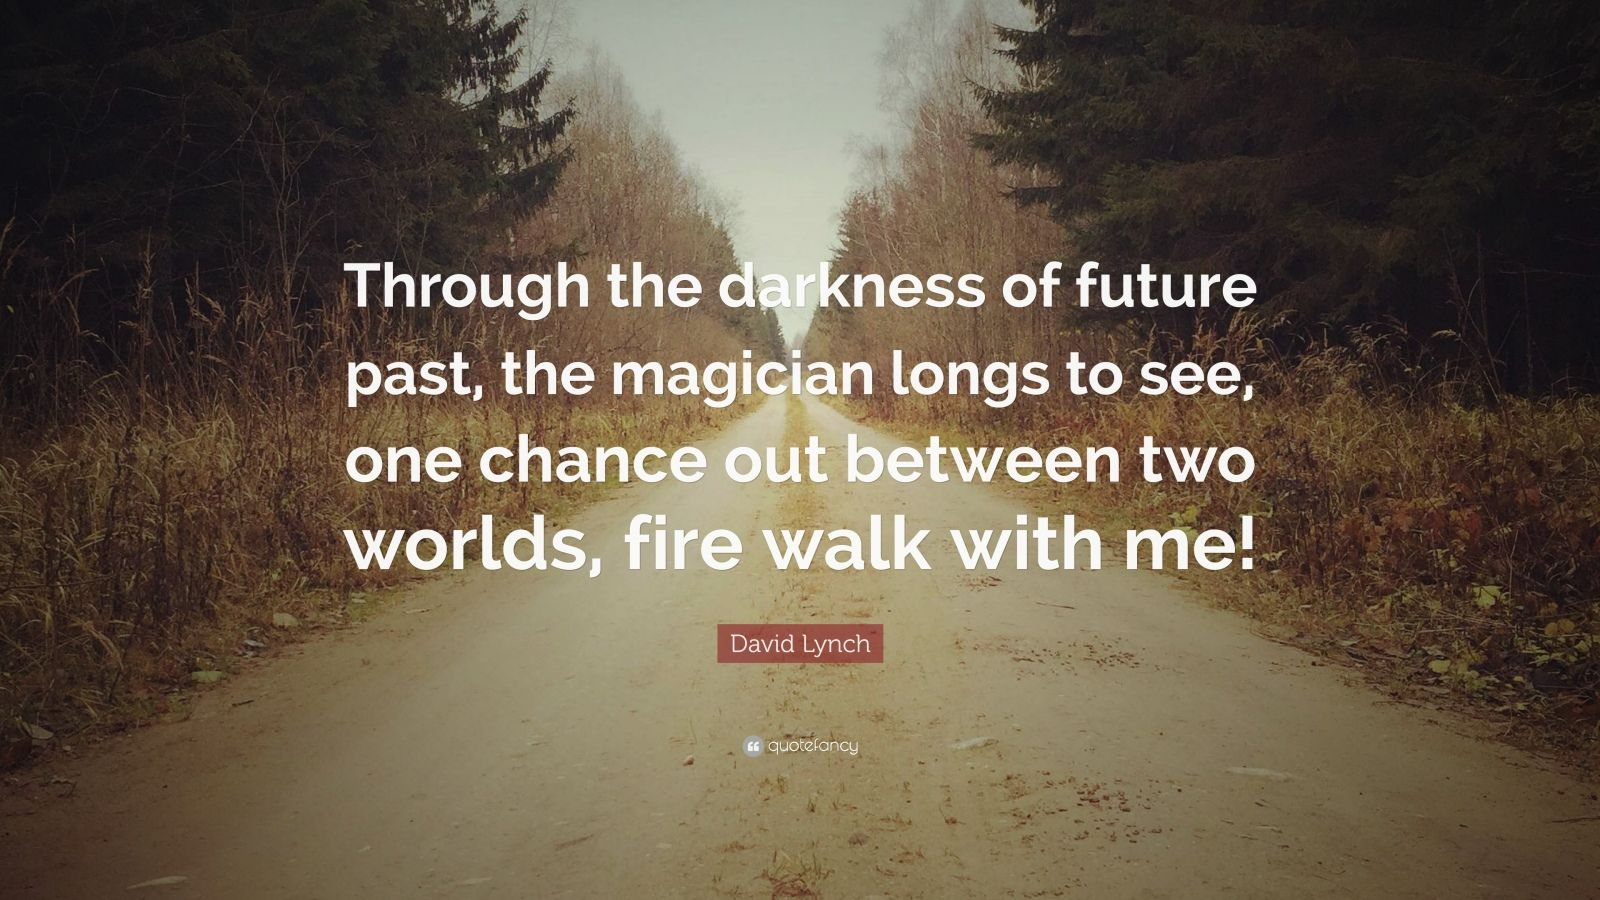 """David Lynch Quote: """"Through the darkness of future past, the magician longs to see, one chance out between two worlds, fire walk with me!"""""""